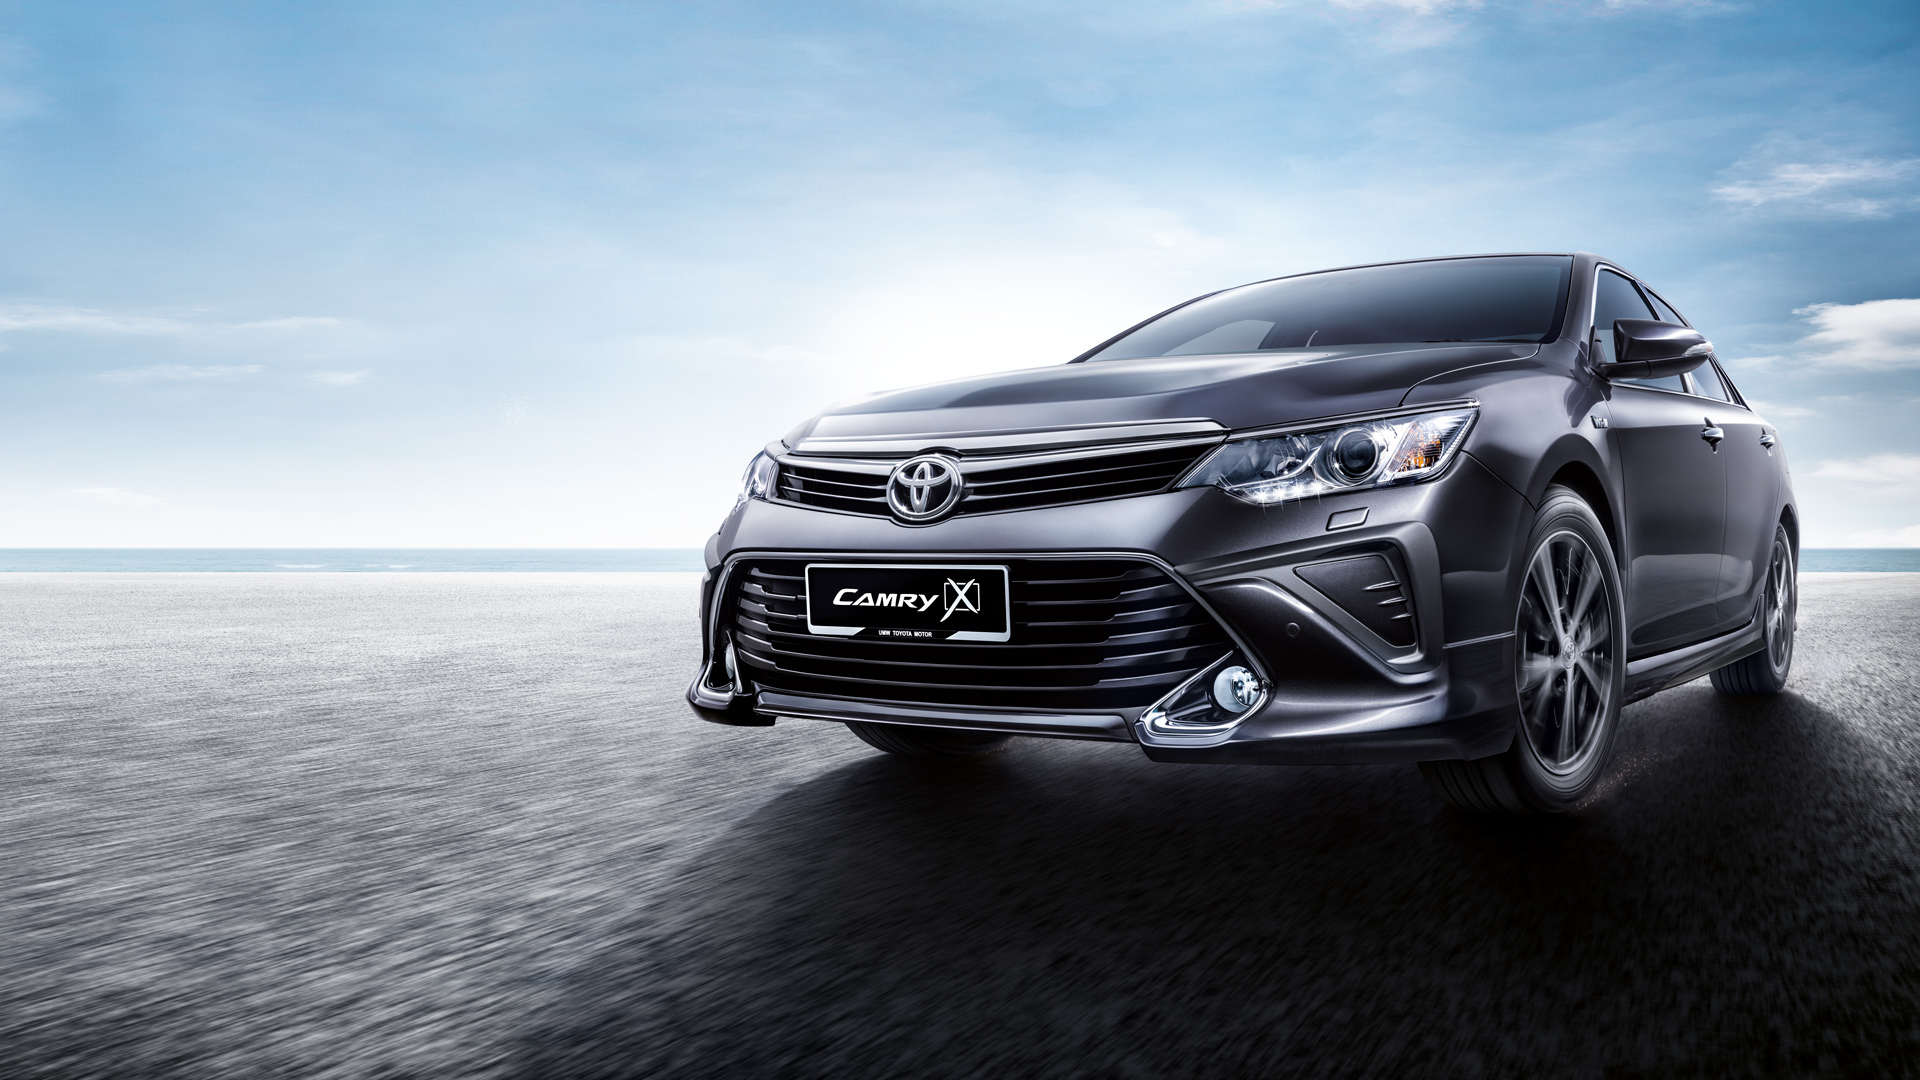 Toyota Malaysia Camry 20 2012 Engine Compartment Diagram This